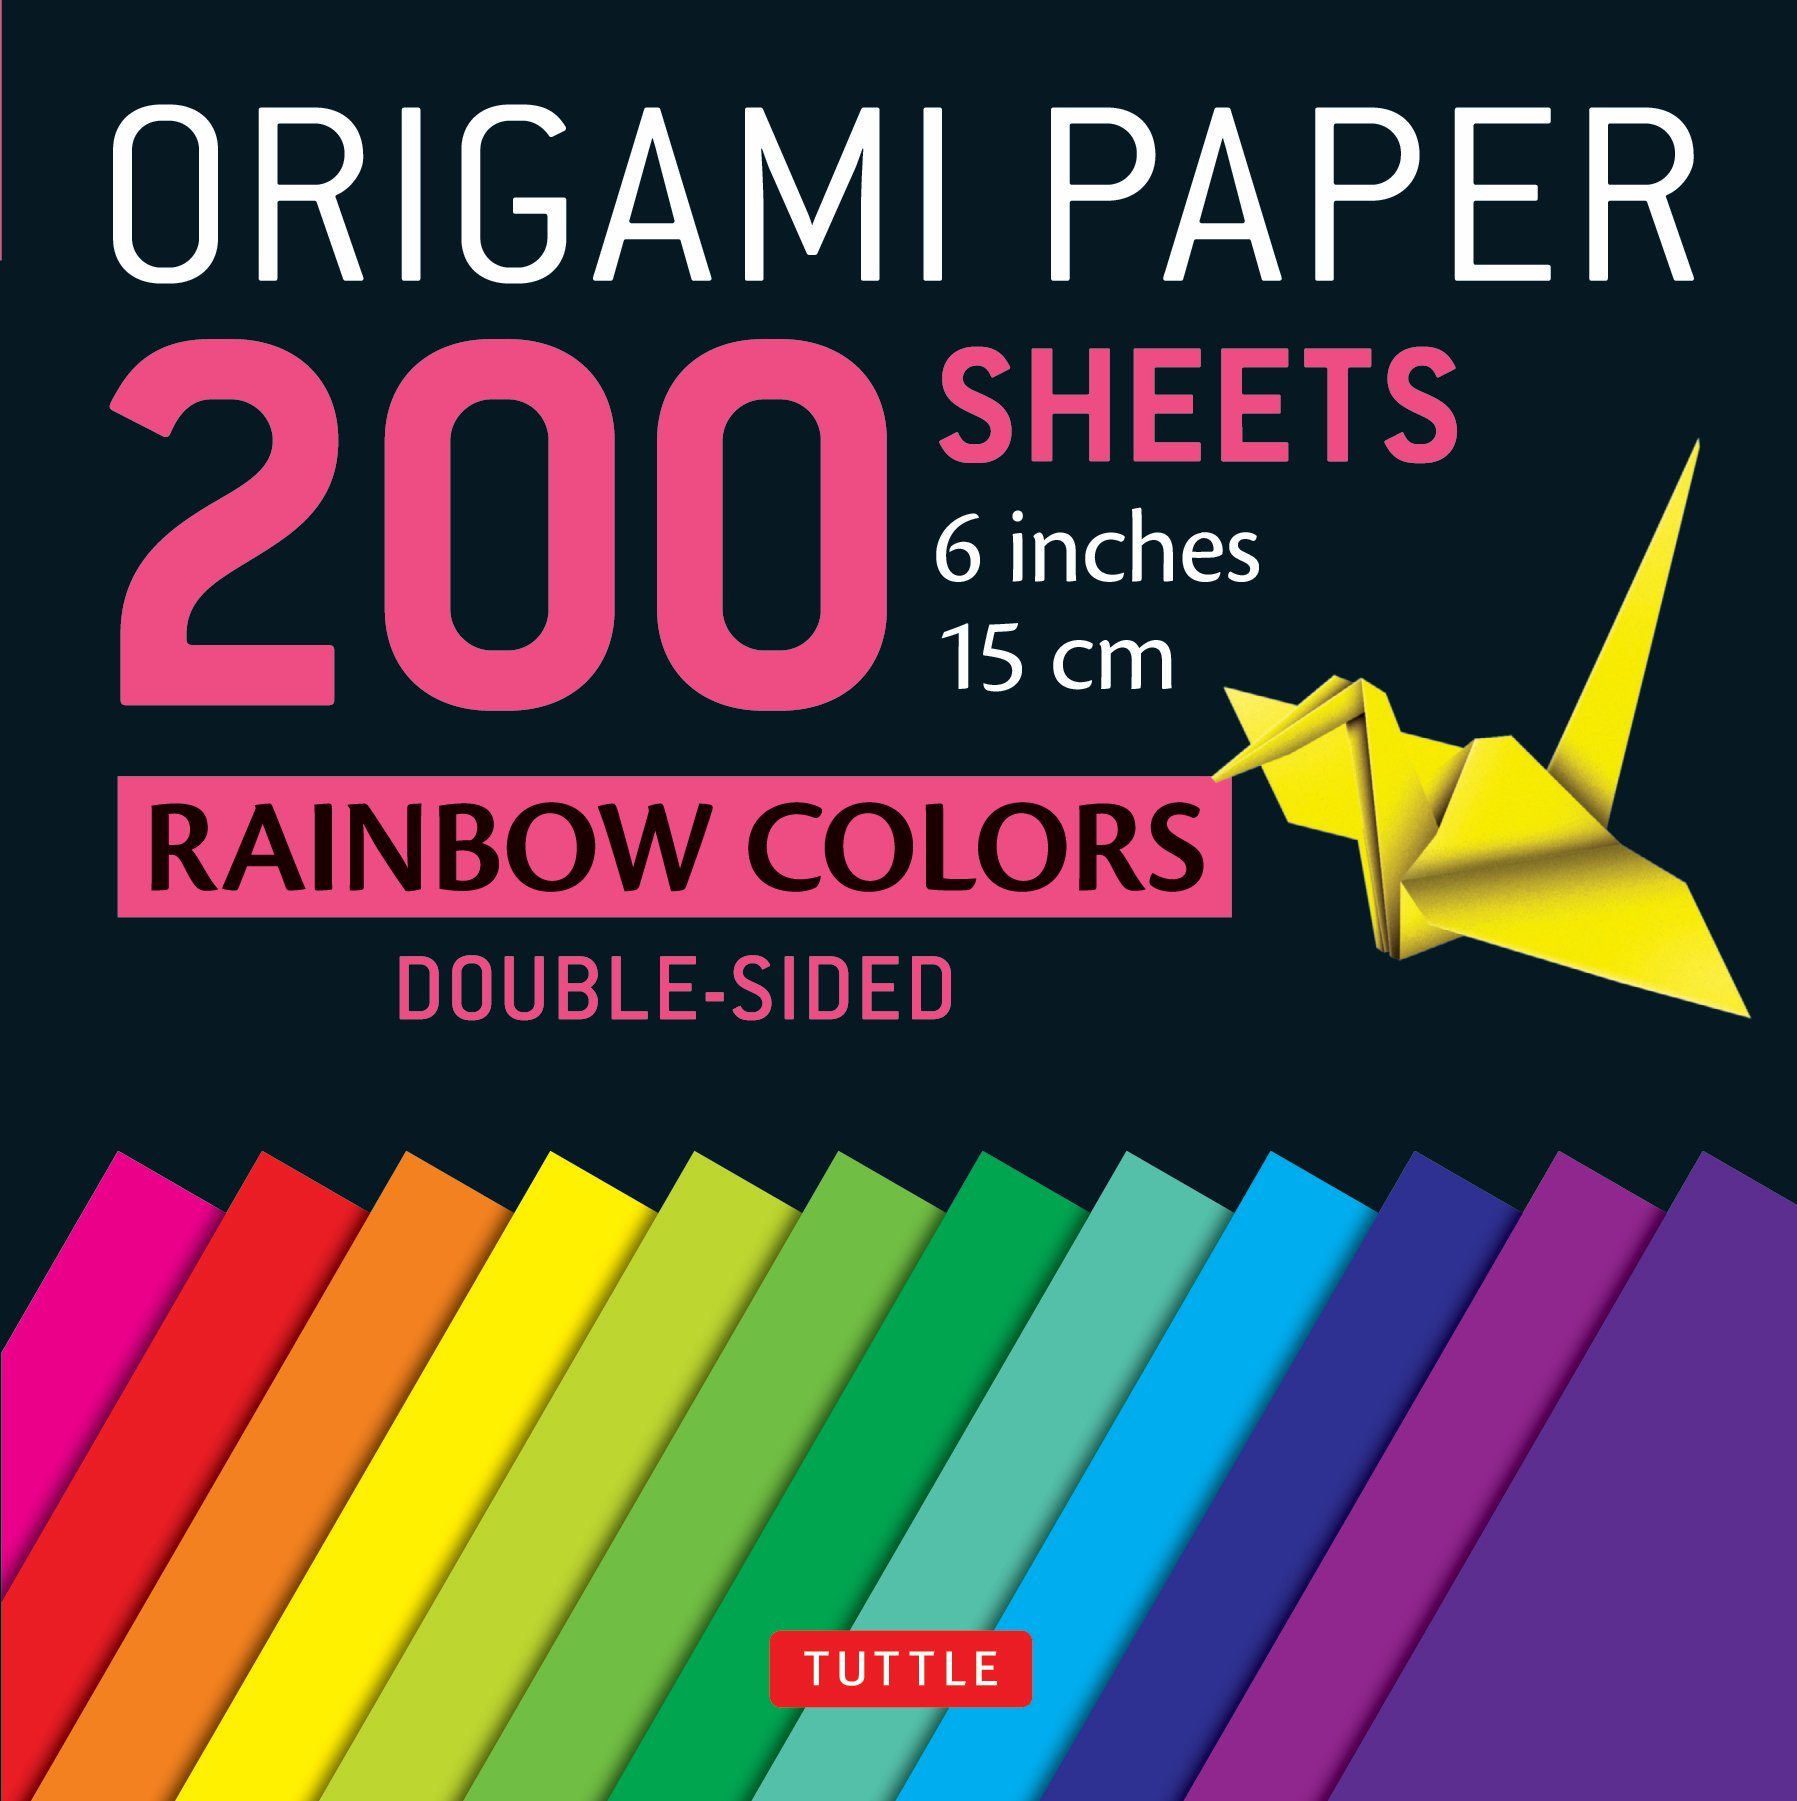 Origami Paper 200 sheets Rainbow Colors 6'' (15 cm): Tuttle Origami Paper: High-Quality Double-Sided Origami Sheets Printed with 12 Different Colors (Instructions for 8 Projects Included)